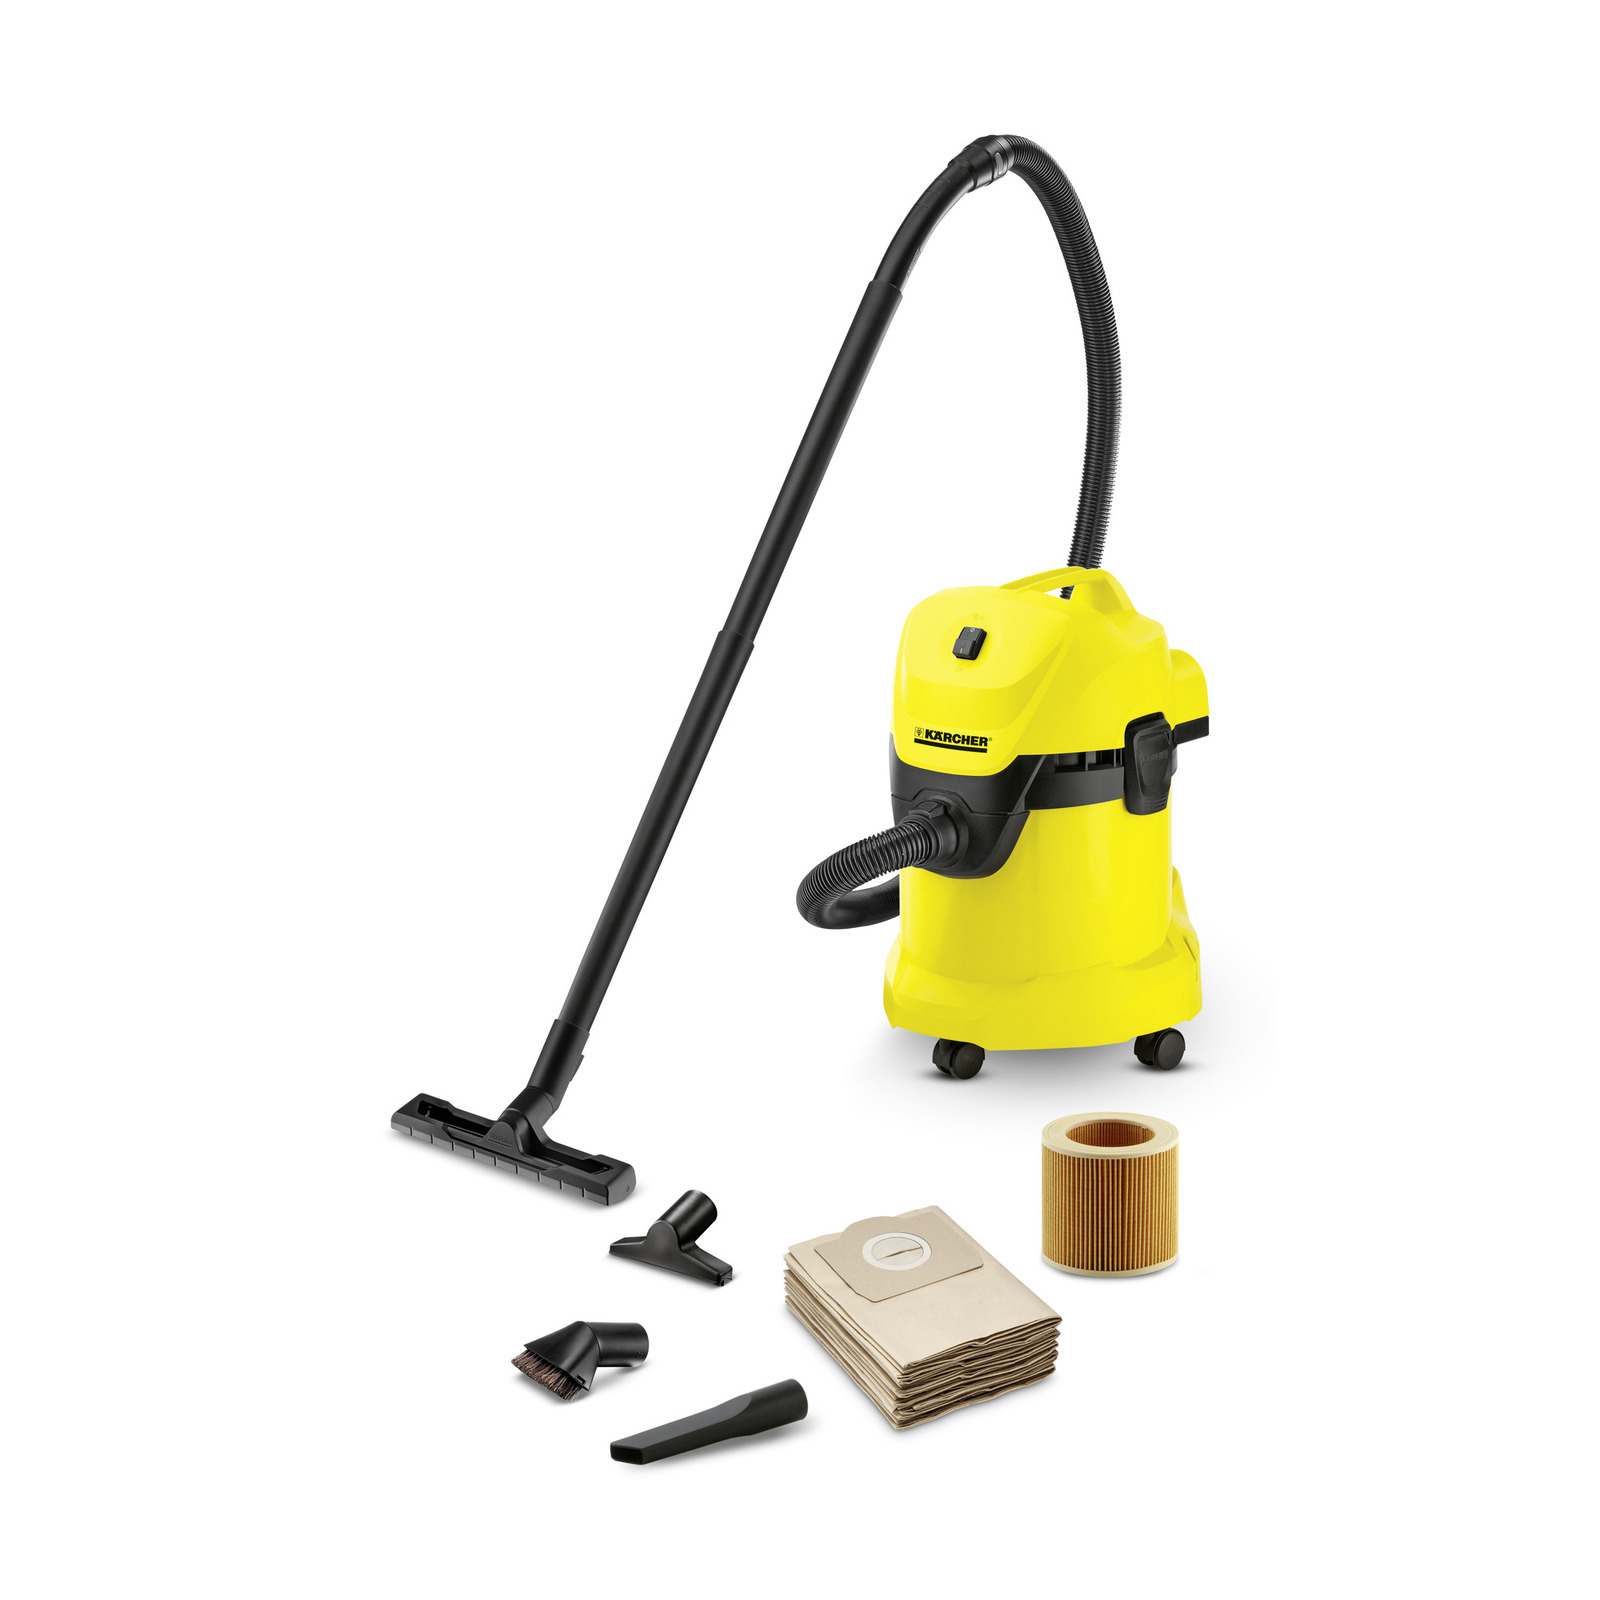 715a1b47b17 WD 3 16298160 https://www.kaercher.com/in/home-garden/multi-functional- vacuum-cleaners/multi-purpose-vacuum-cleaners/wd-3-16298160.html The  super-powerful, ...